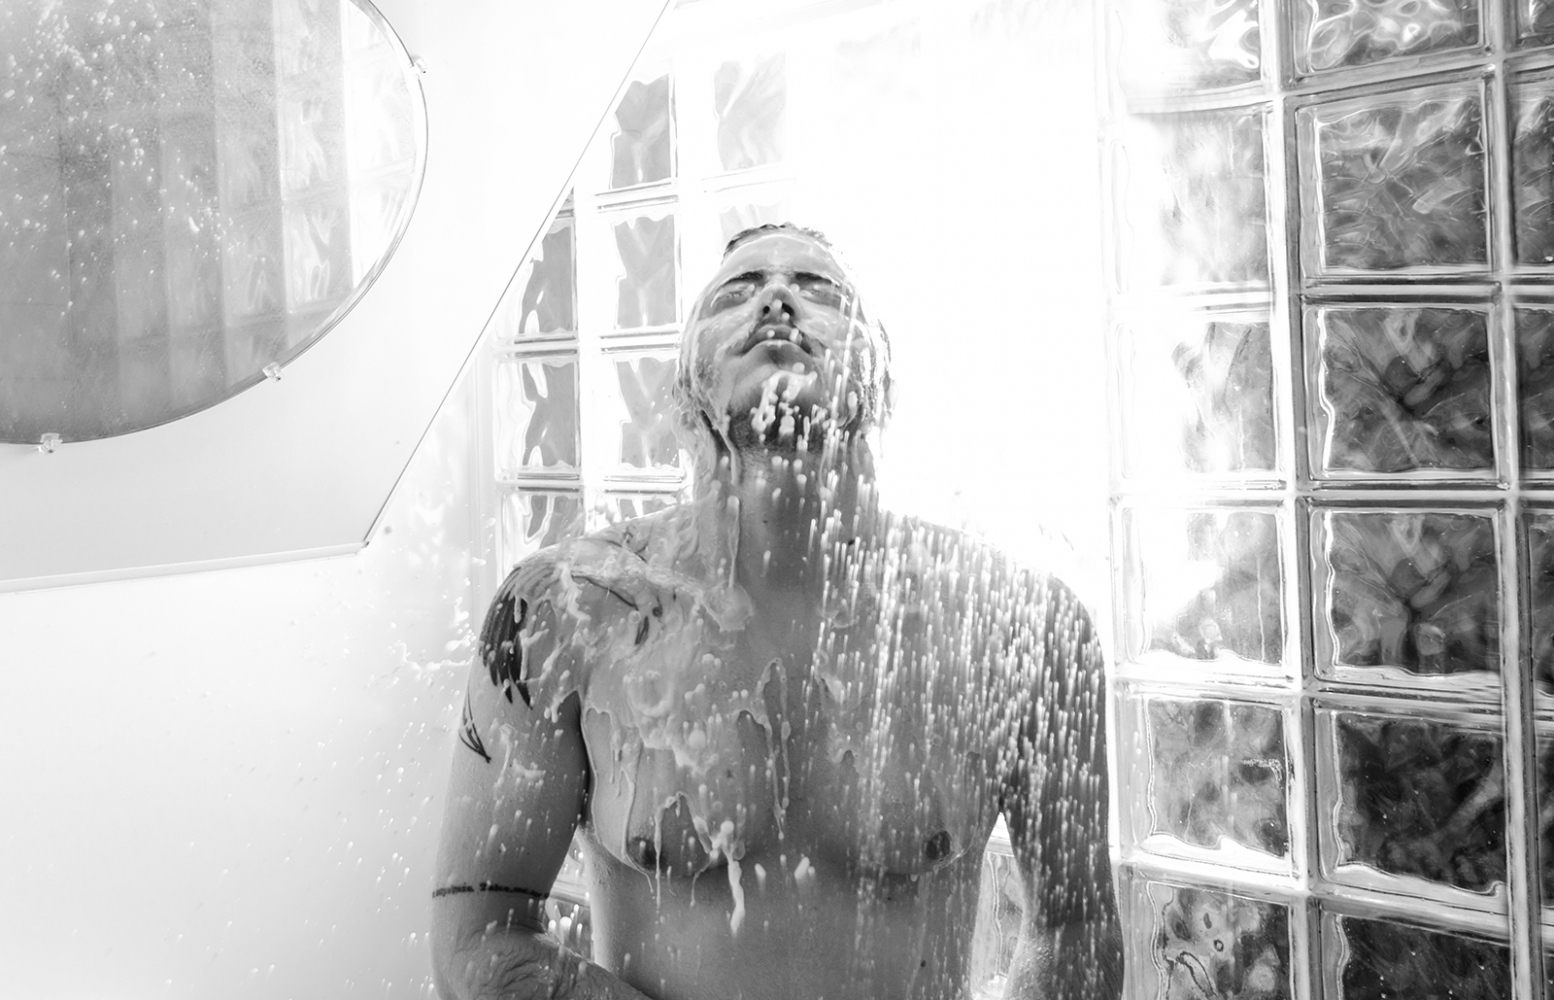 "Harrison in Shower, December 2013 ""Now I feel like I can say I'm a self made man, I've worked really hard to be who I am and where I am."" -Harrison"